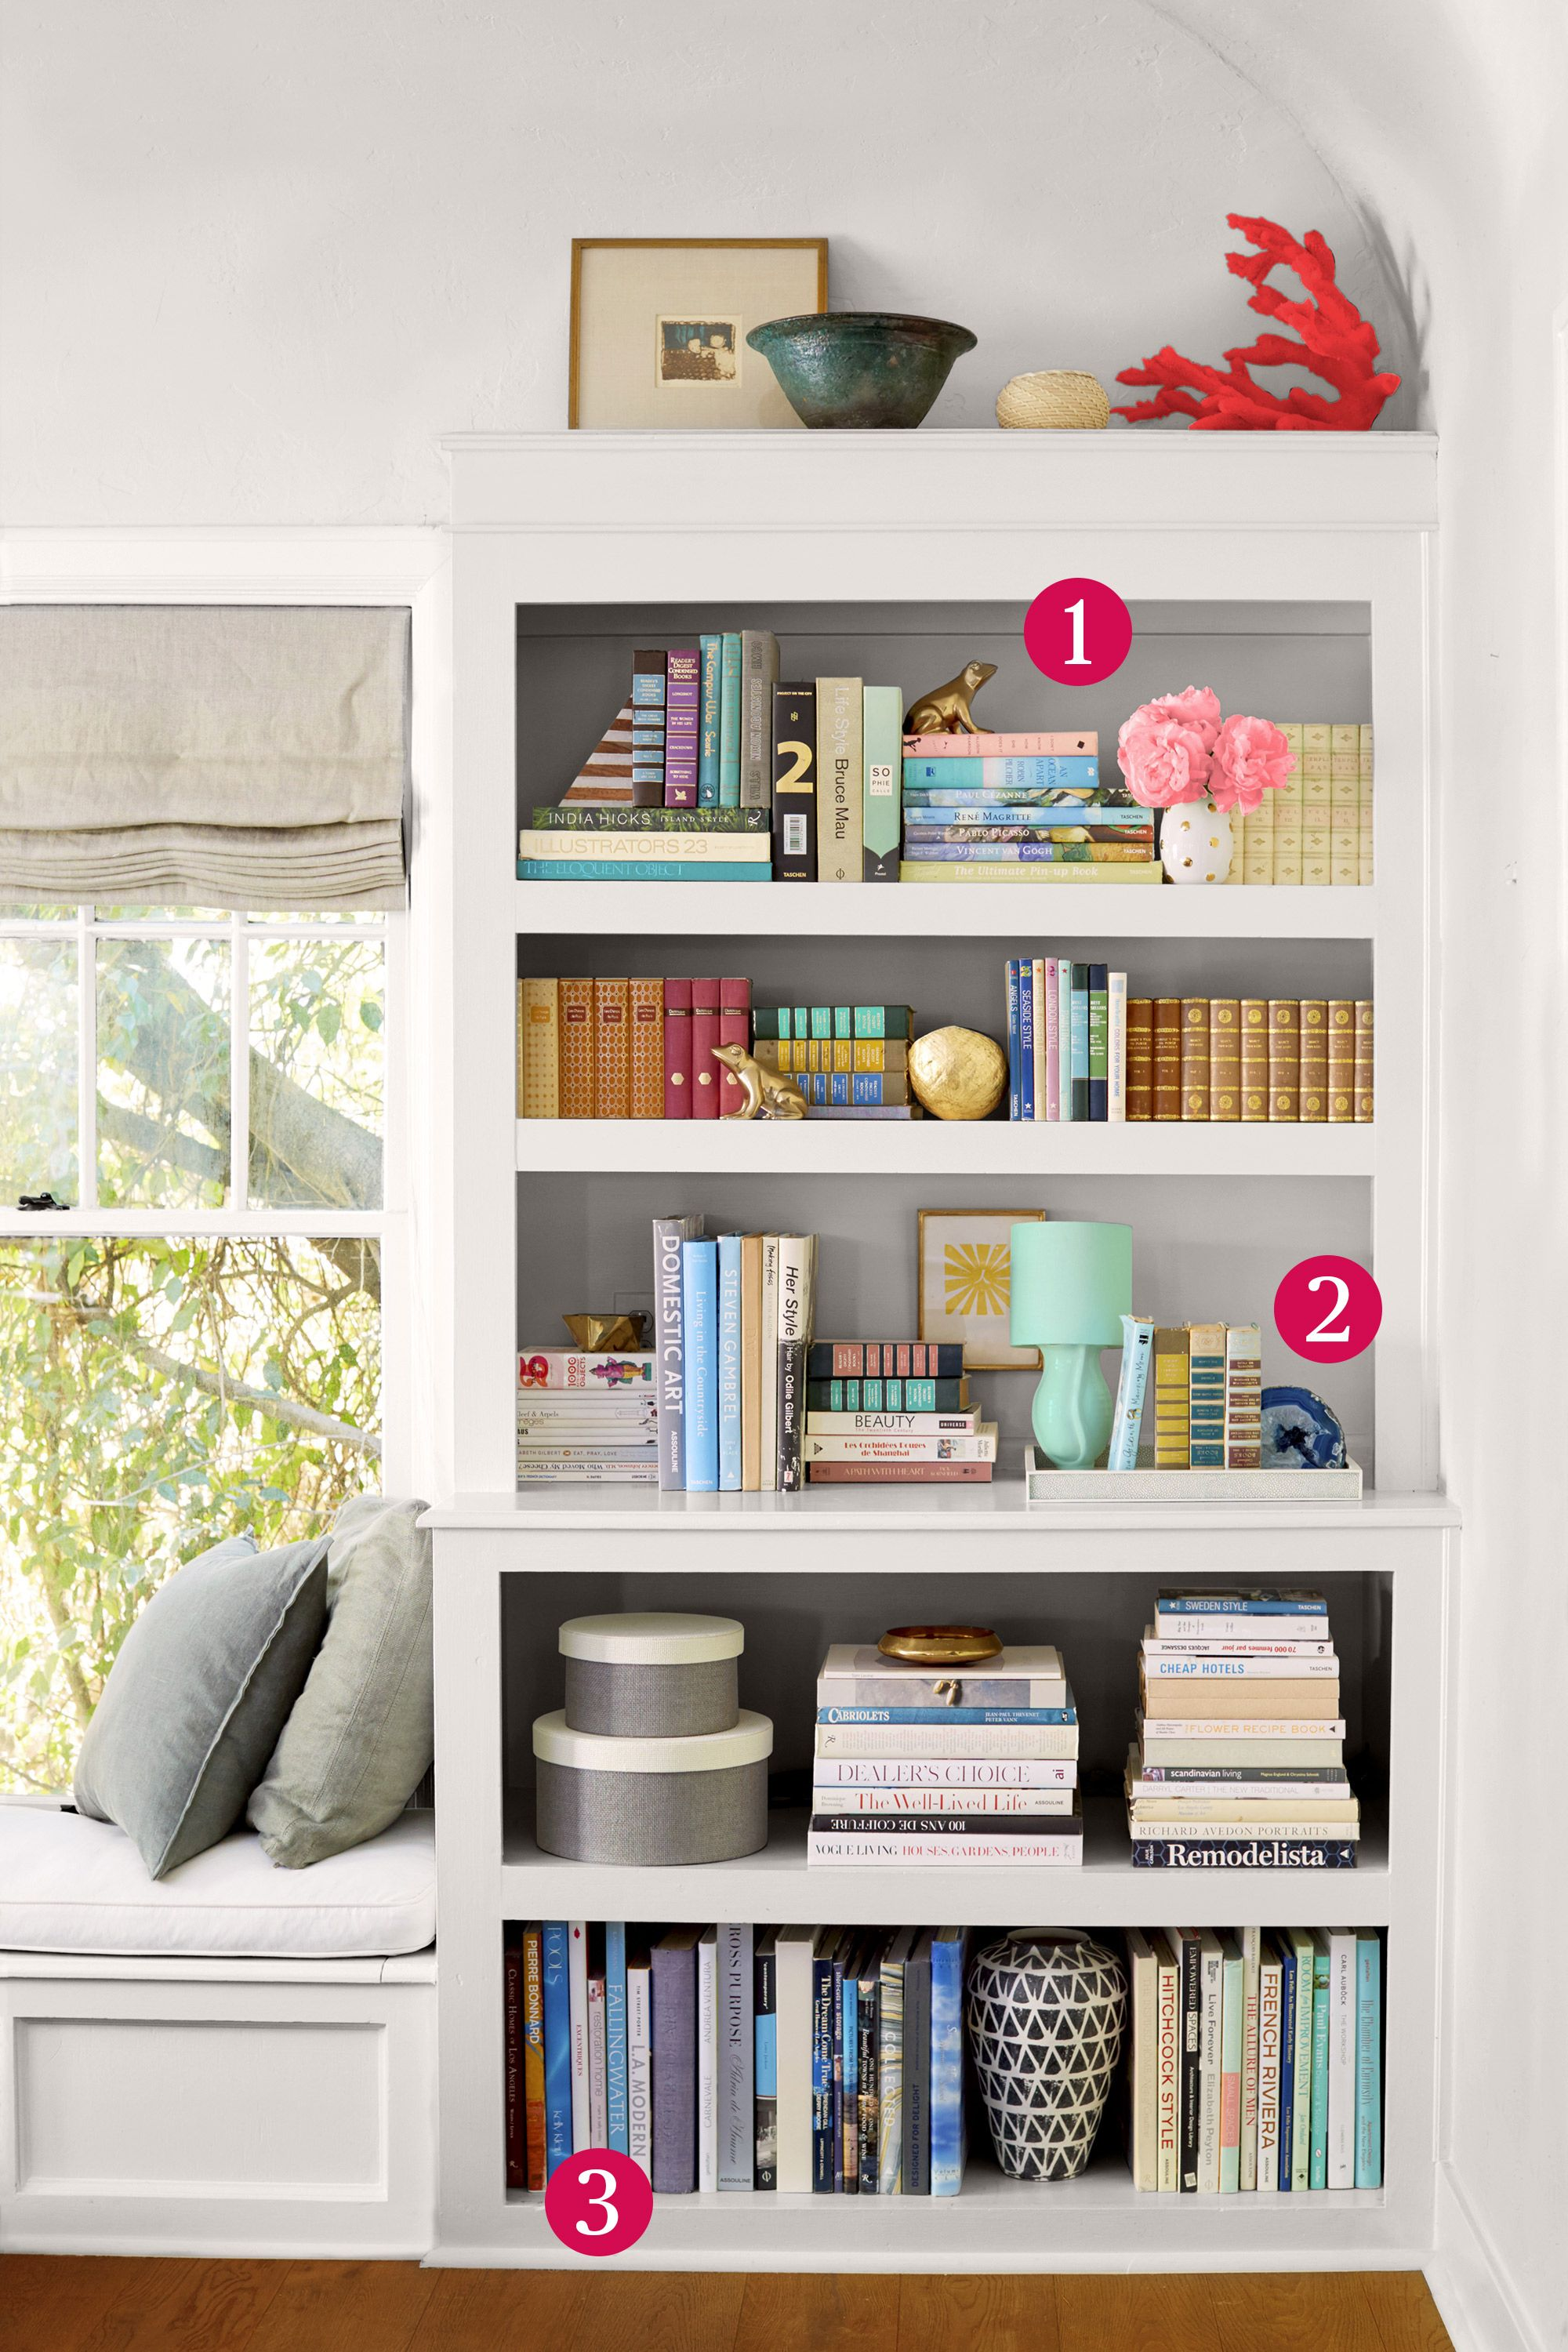 home decorating ideas bookshelves 6 organization ideas for your bookshelves organizing 11307